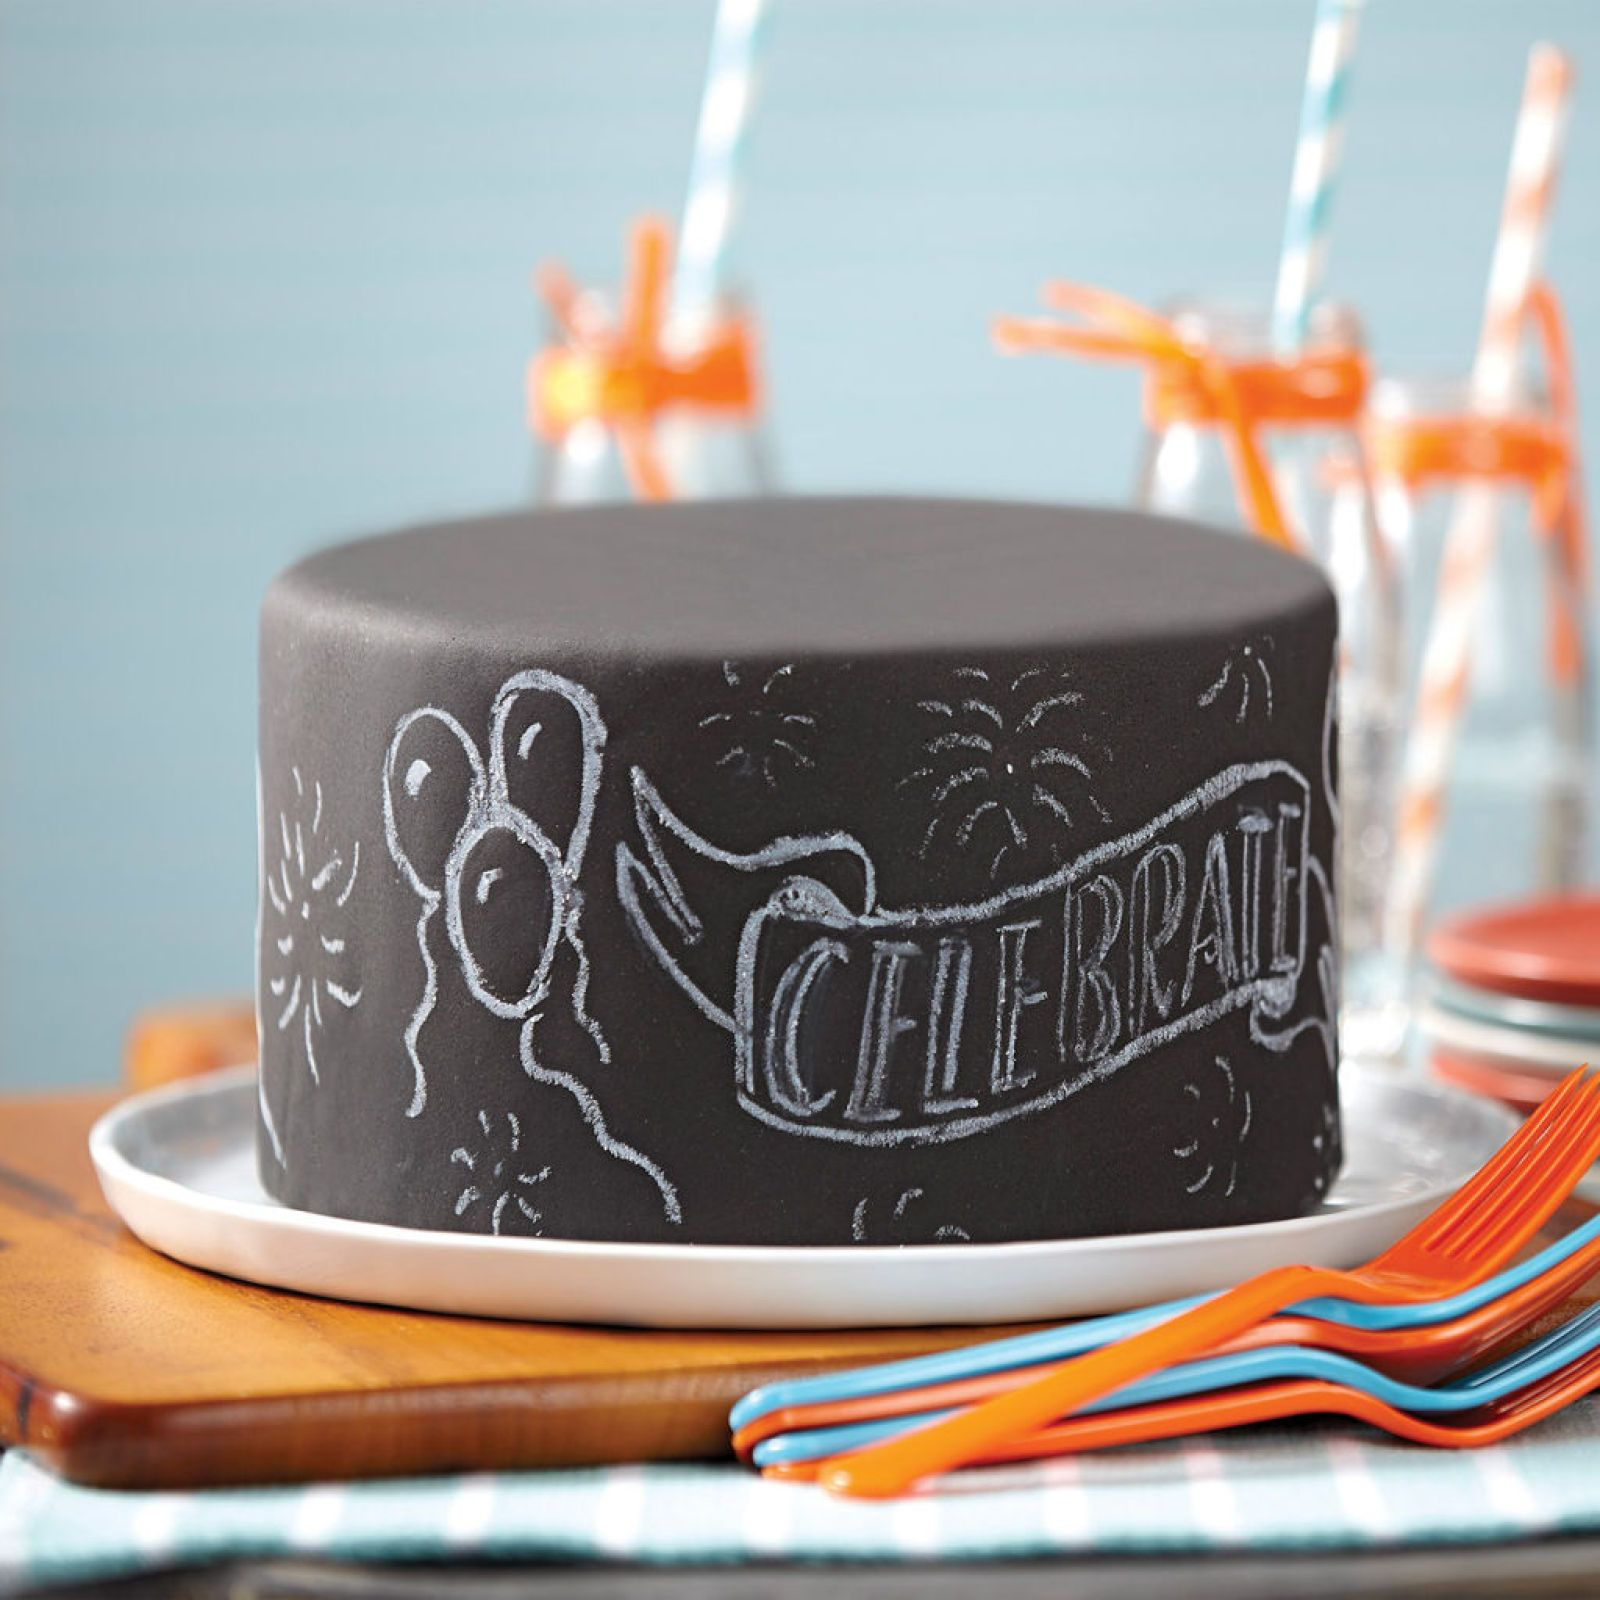 how to write on fondant